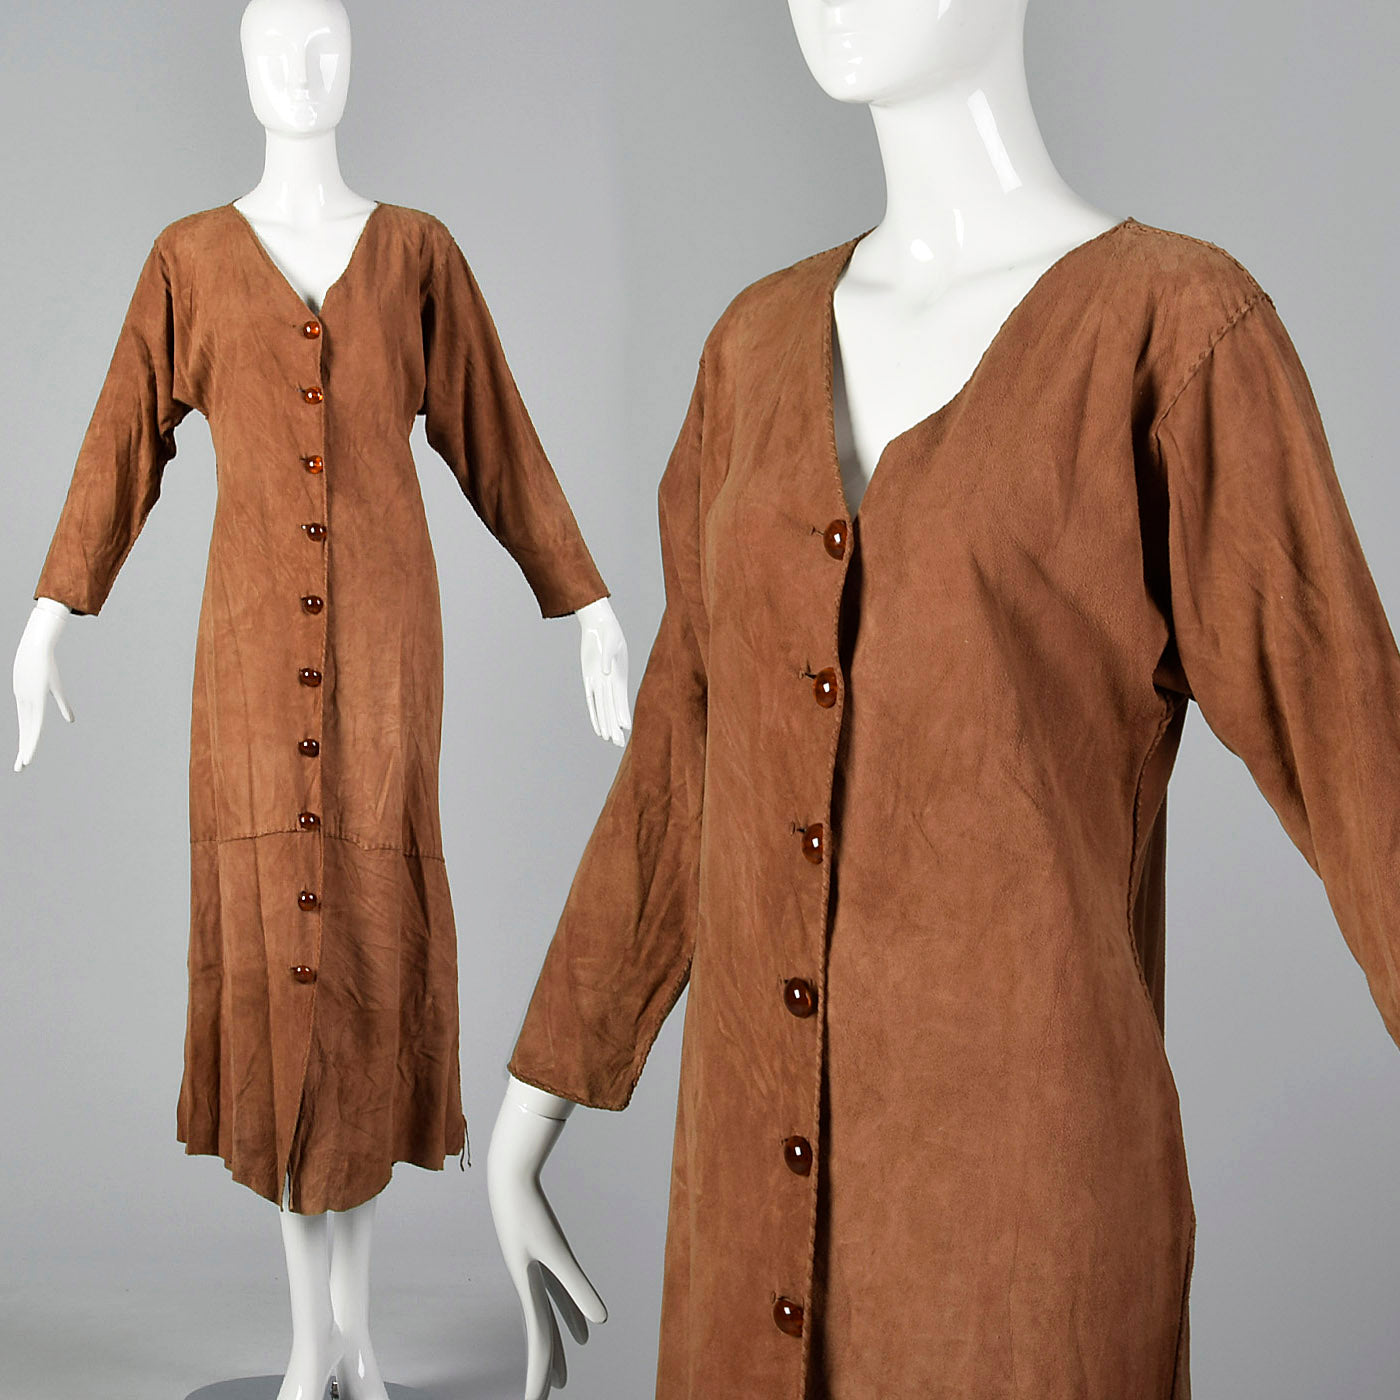 2000s Brown Suede Leather Dress